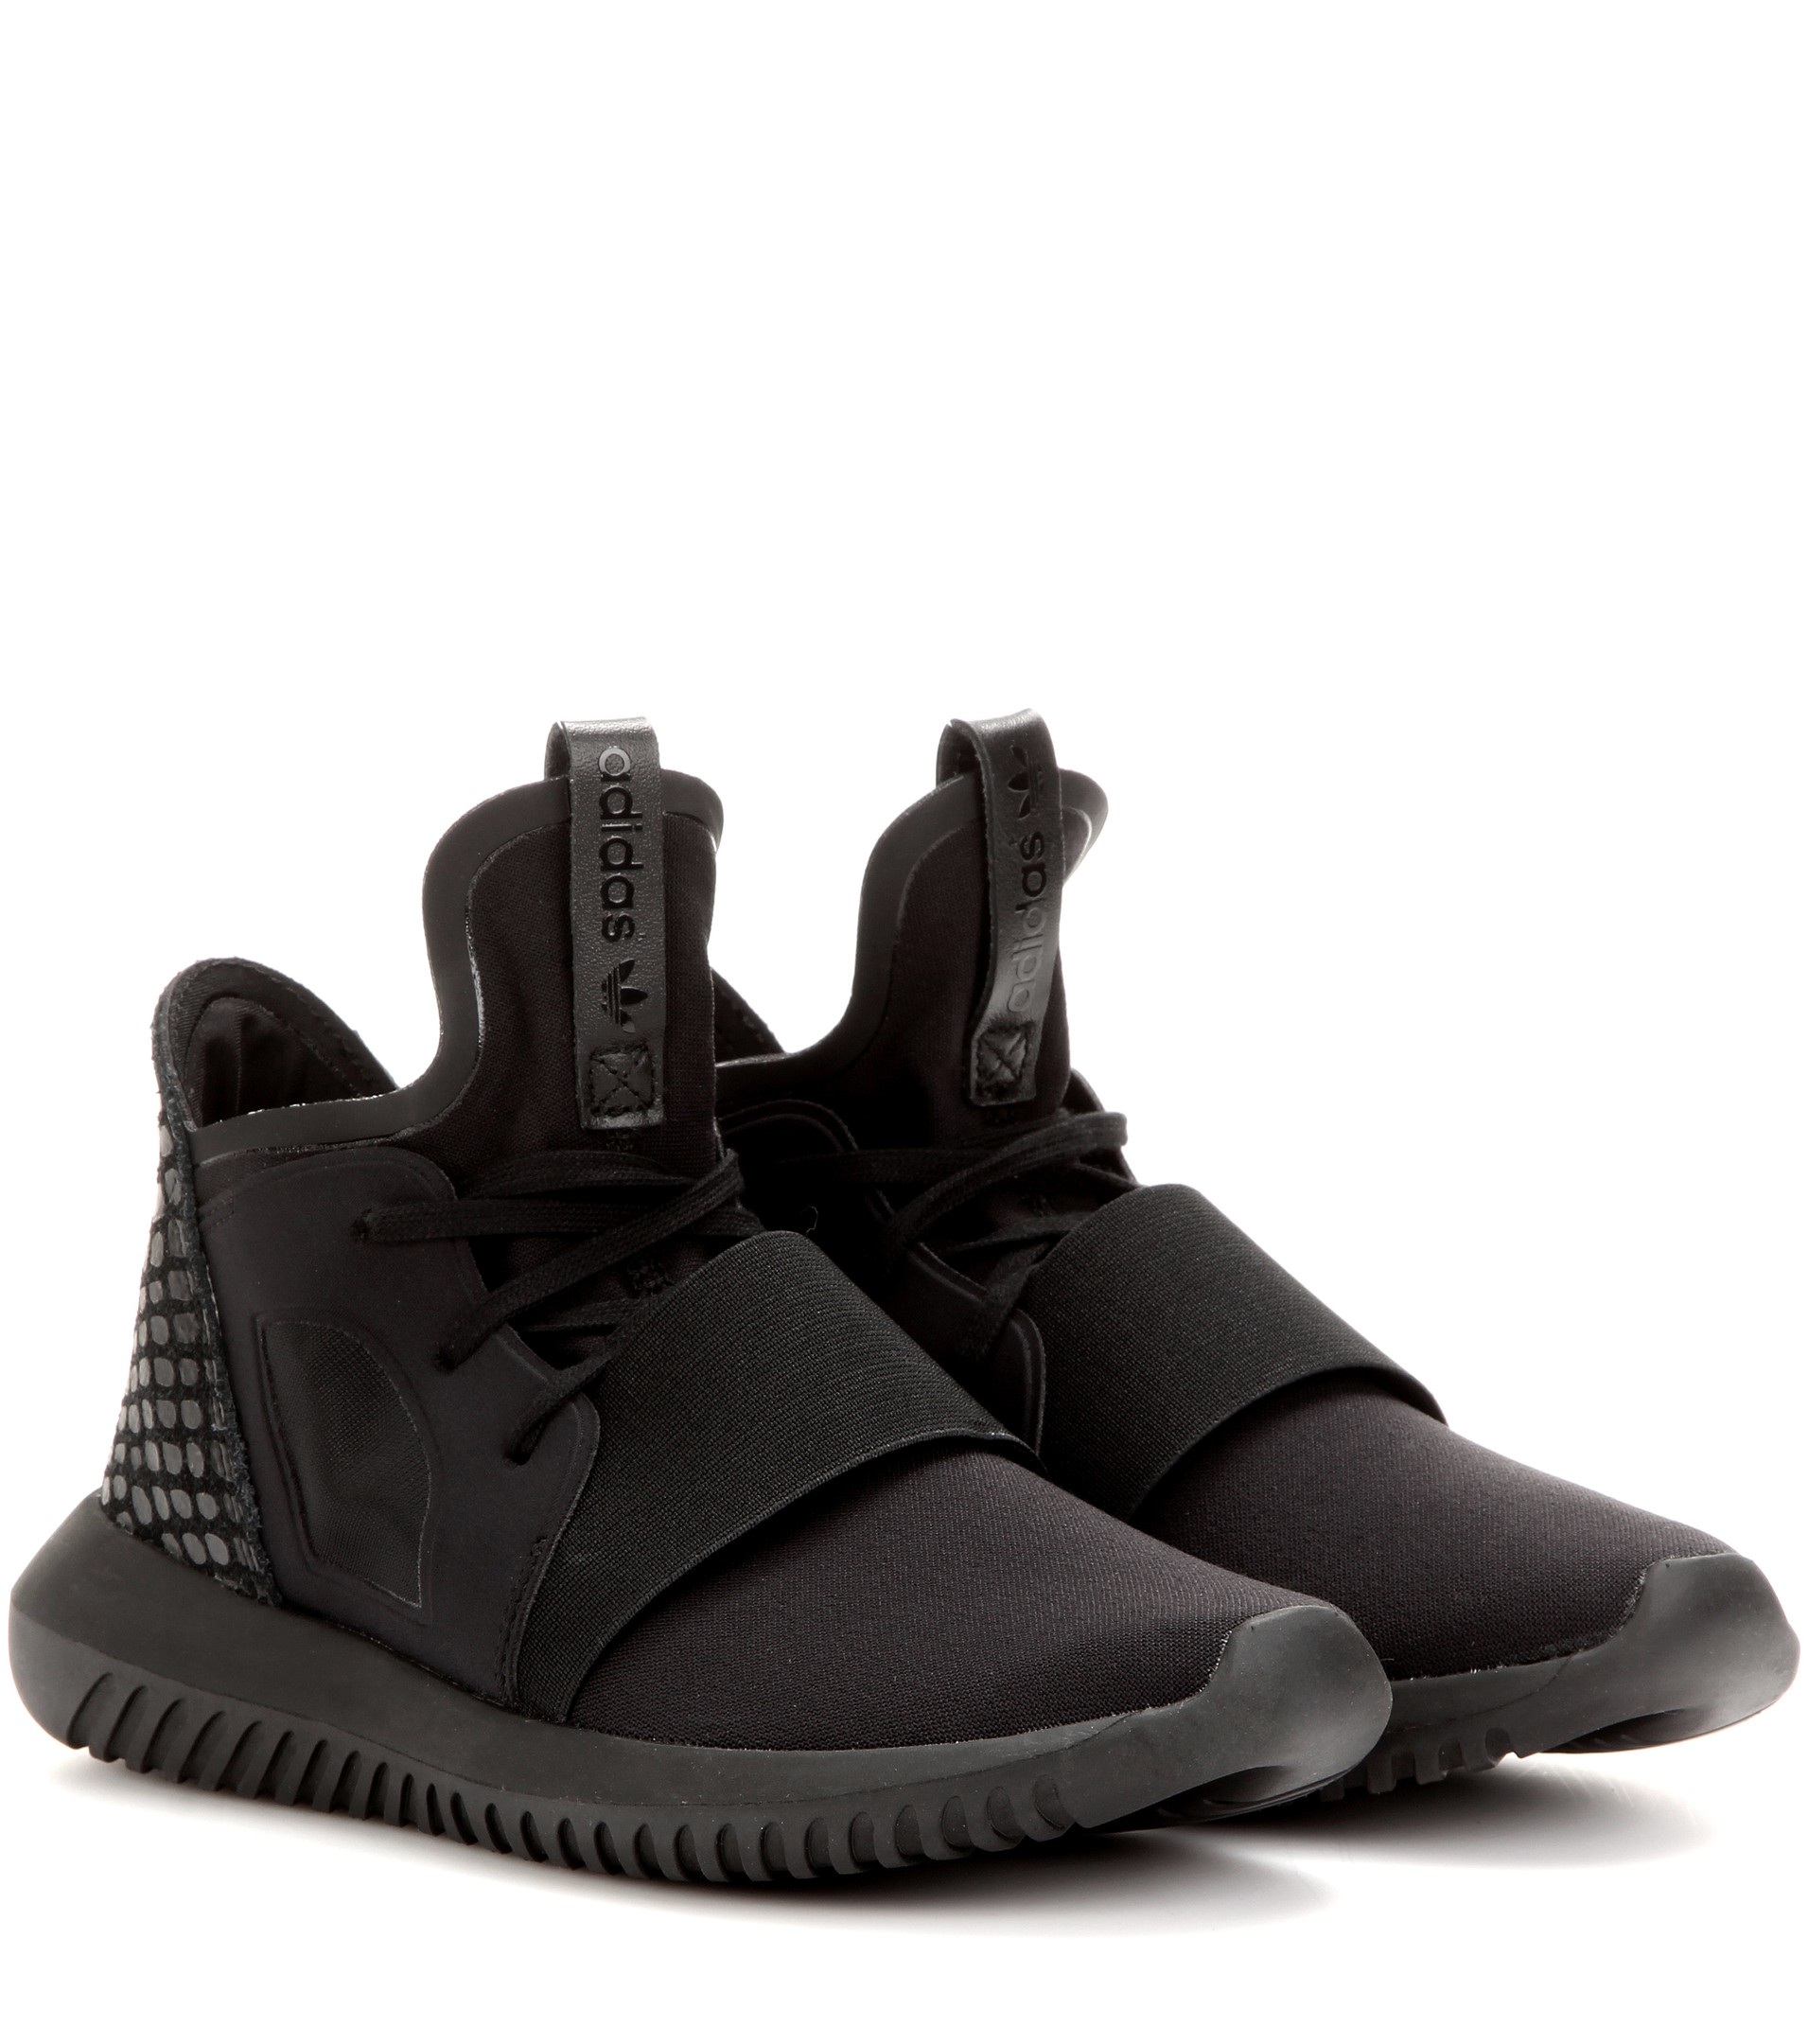 Adidas Men 's Originals Tubular Invader Strap Shoes Black BB 1398